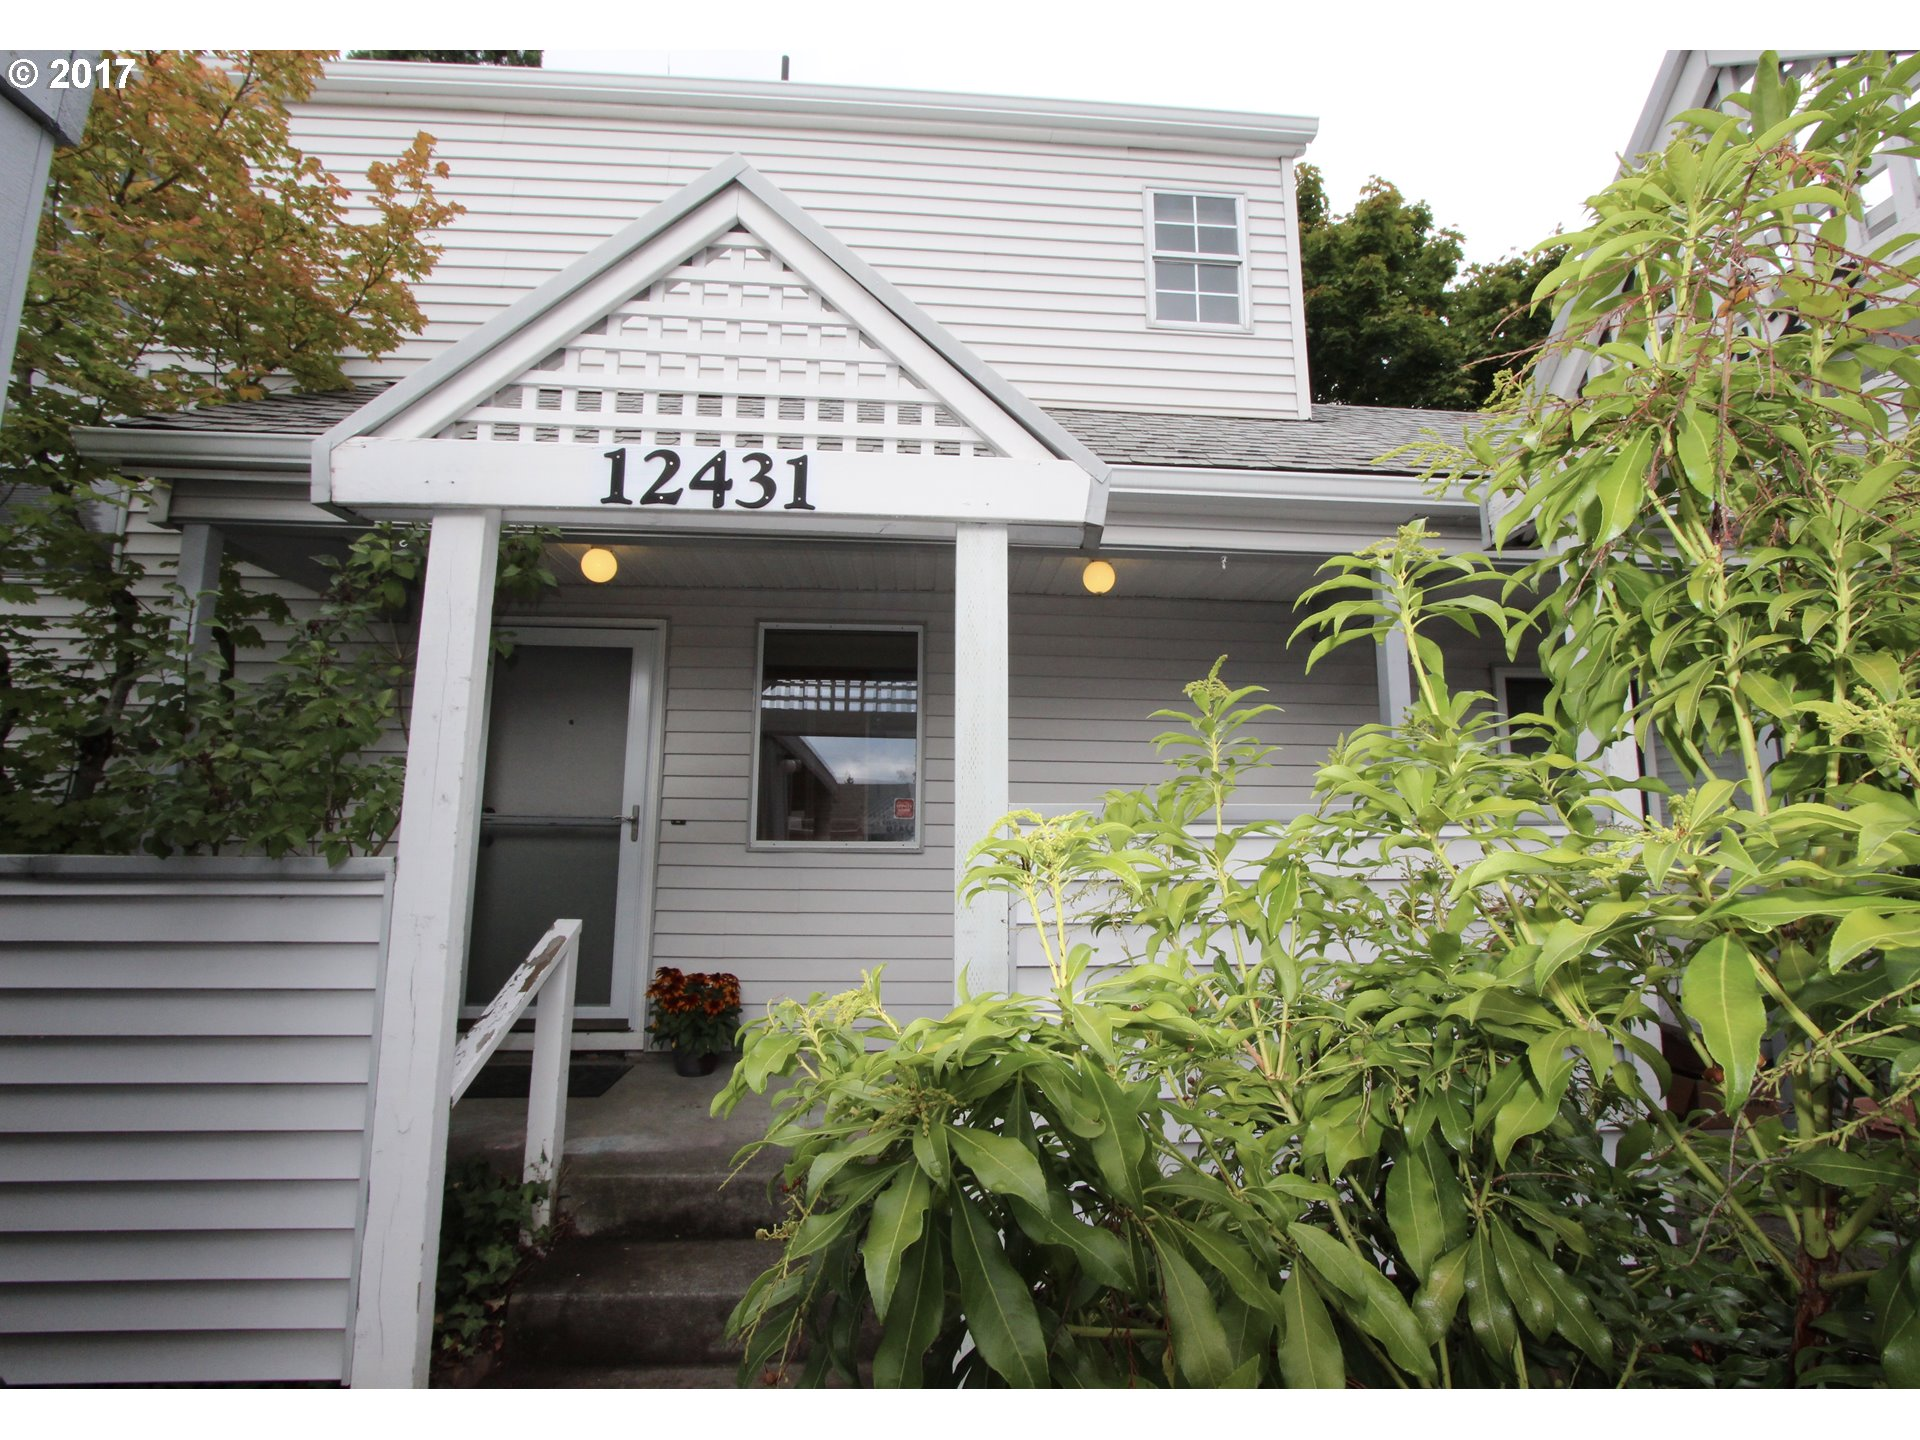 12431 SE CARUTHERS ST, Portland, OR 97233